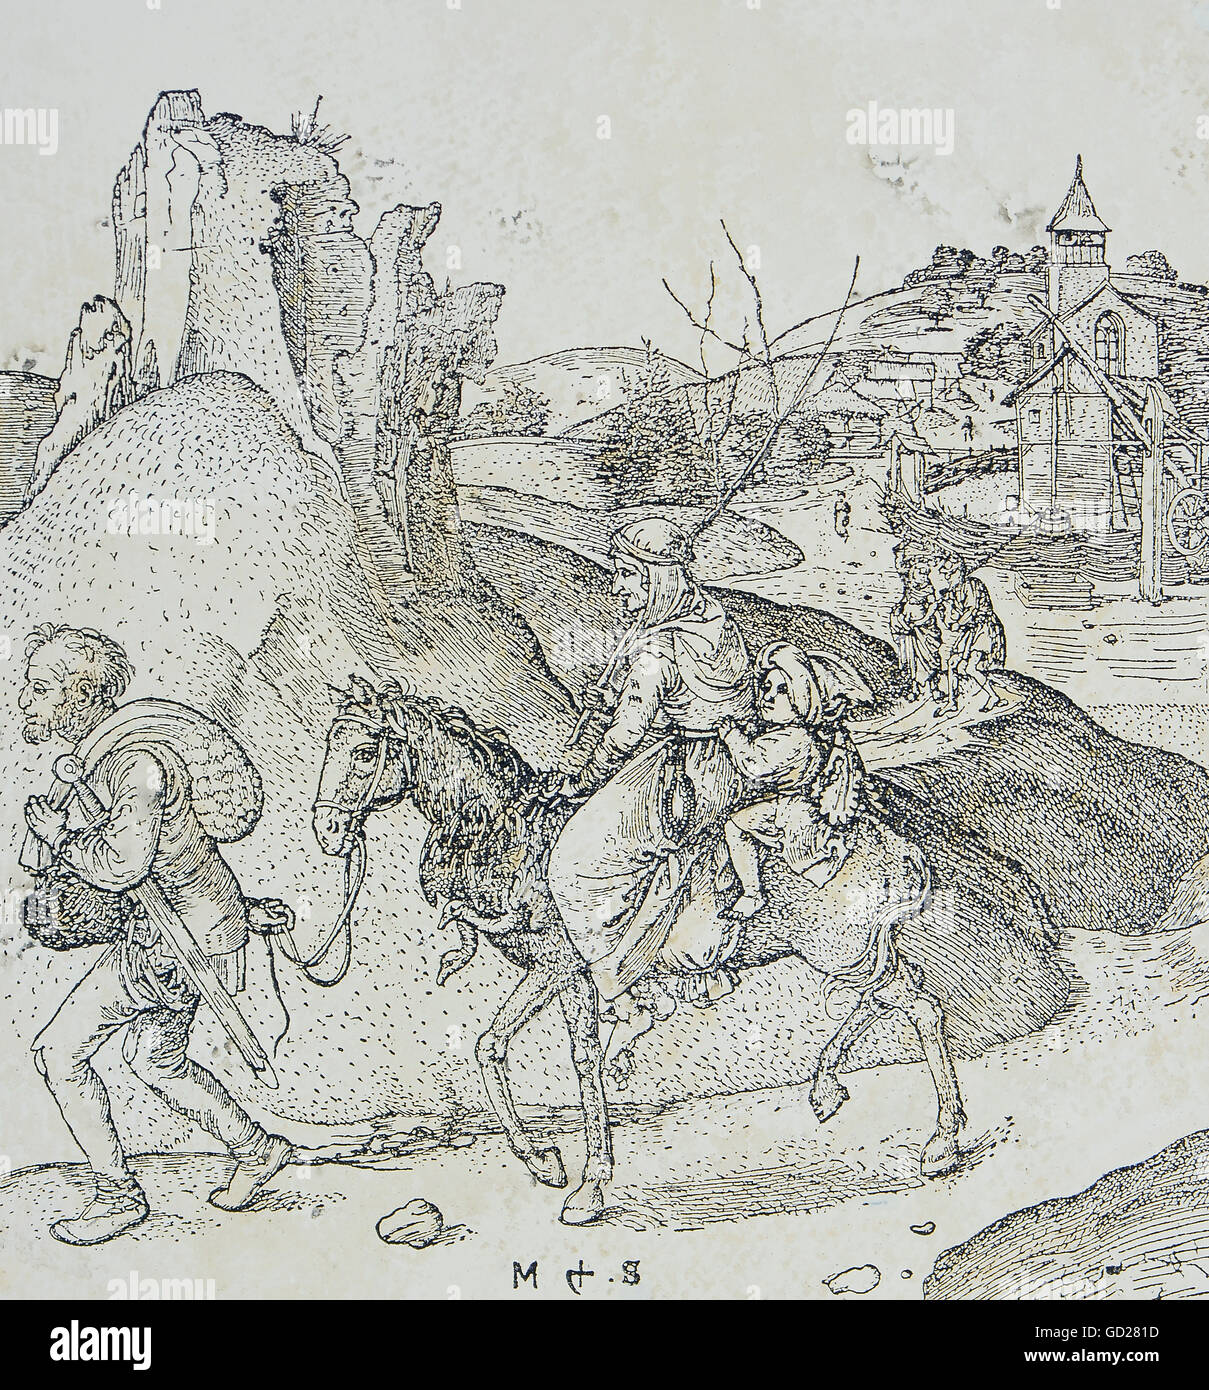 fine arts, Schongauer, Martin (1446 - 1491), print, Jenishe on the road, copper engraving, 15th century, private - Stock Image